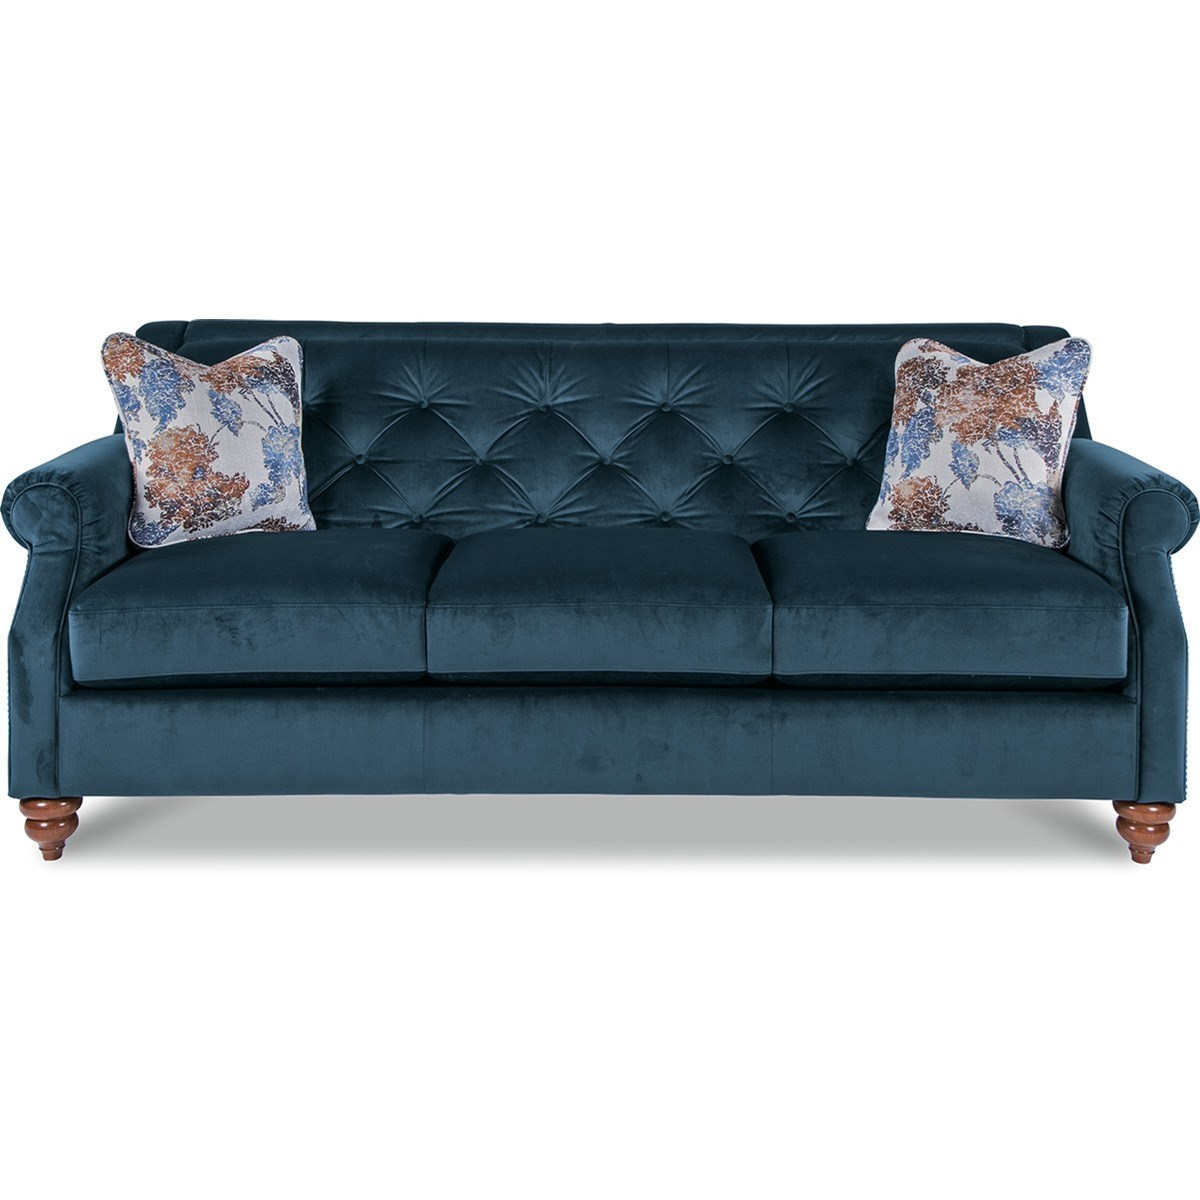 upholstery of sofa rolf benz gebraucht la z boy aberdeen traditional with tufted seatback